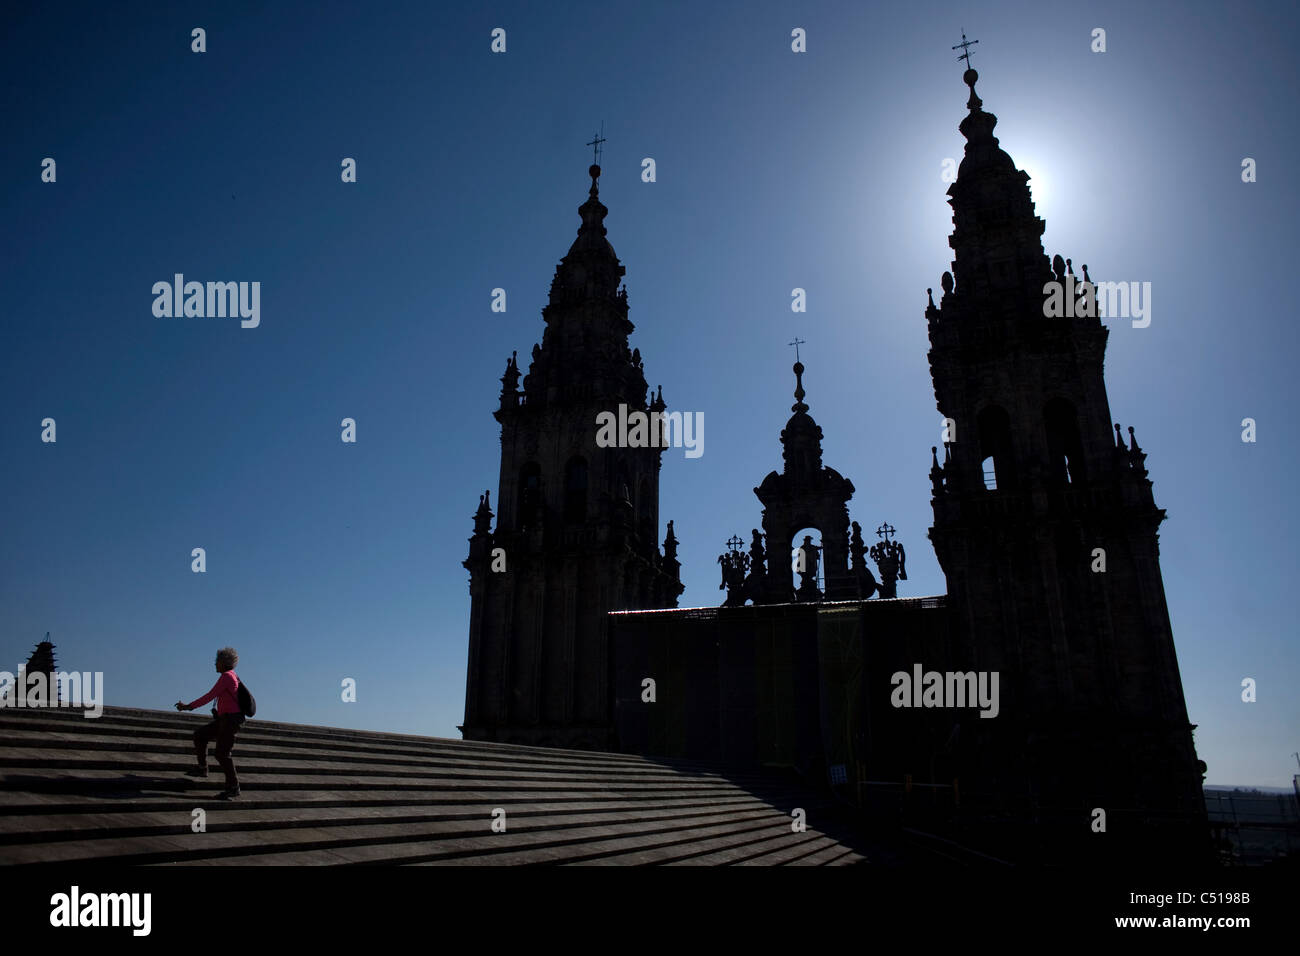 A tourist walks in the roof of the Cathedral of Santiago de Compostela, Spain. Stock Photo